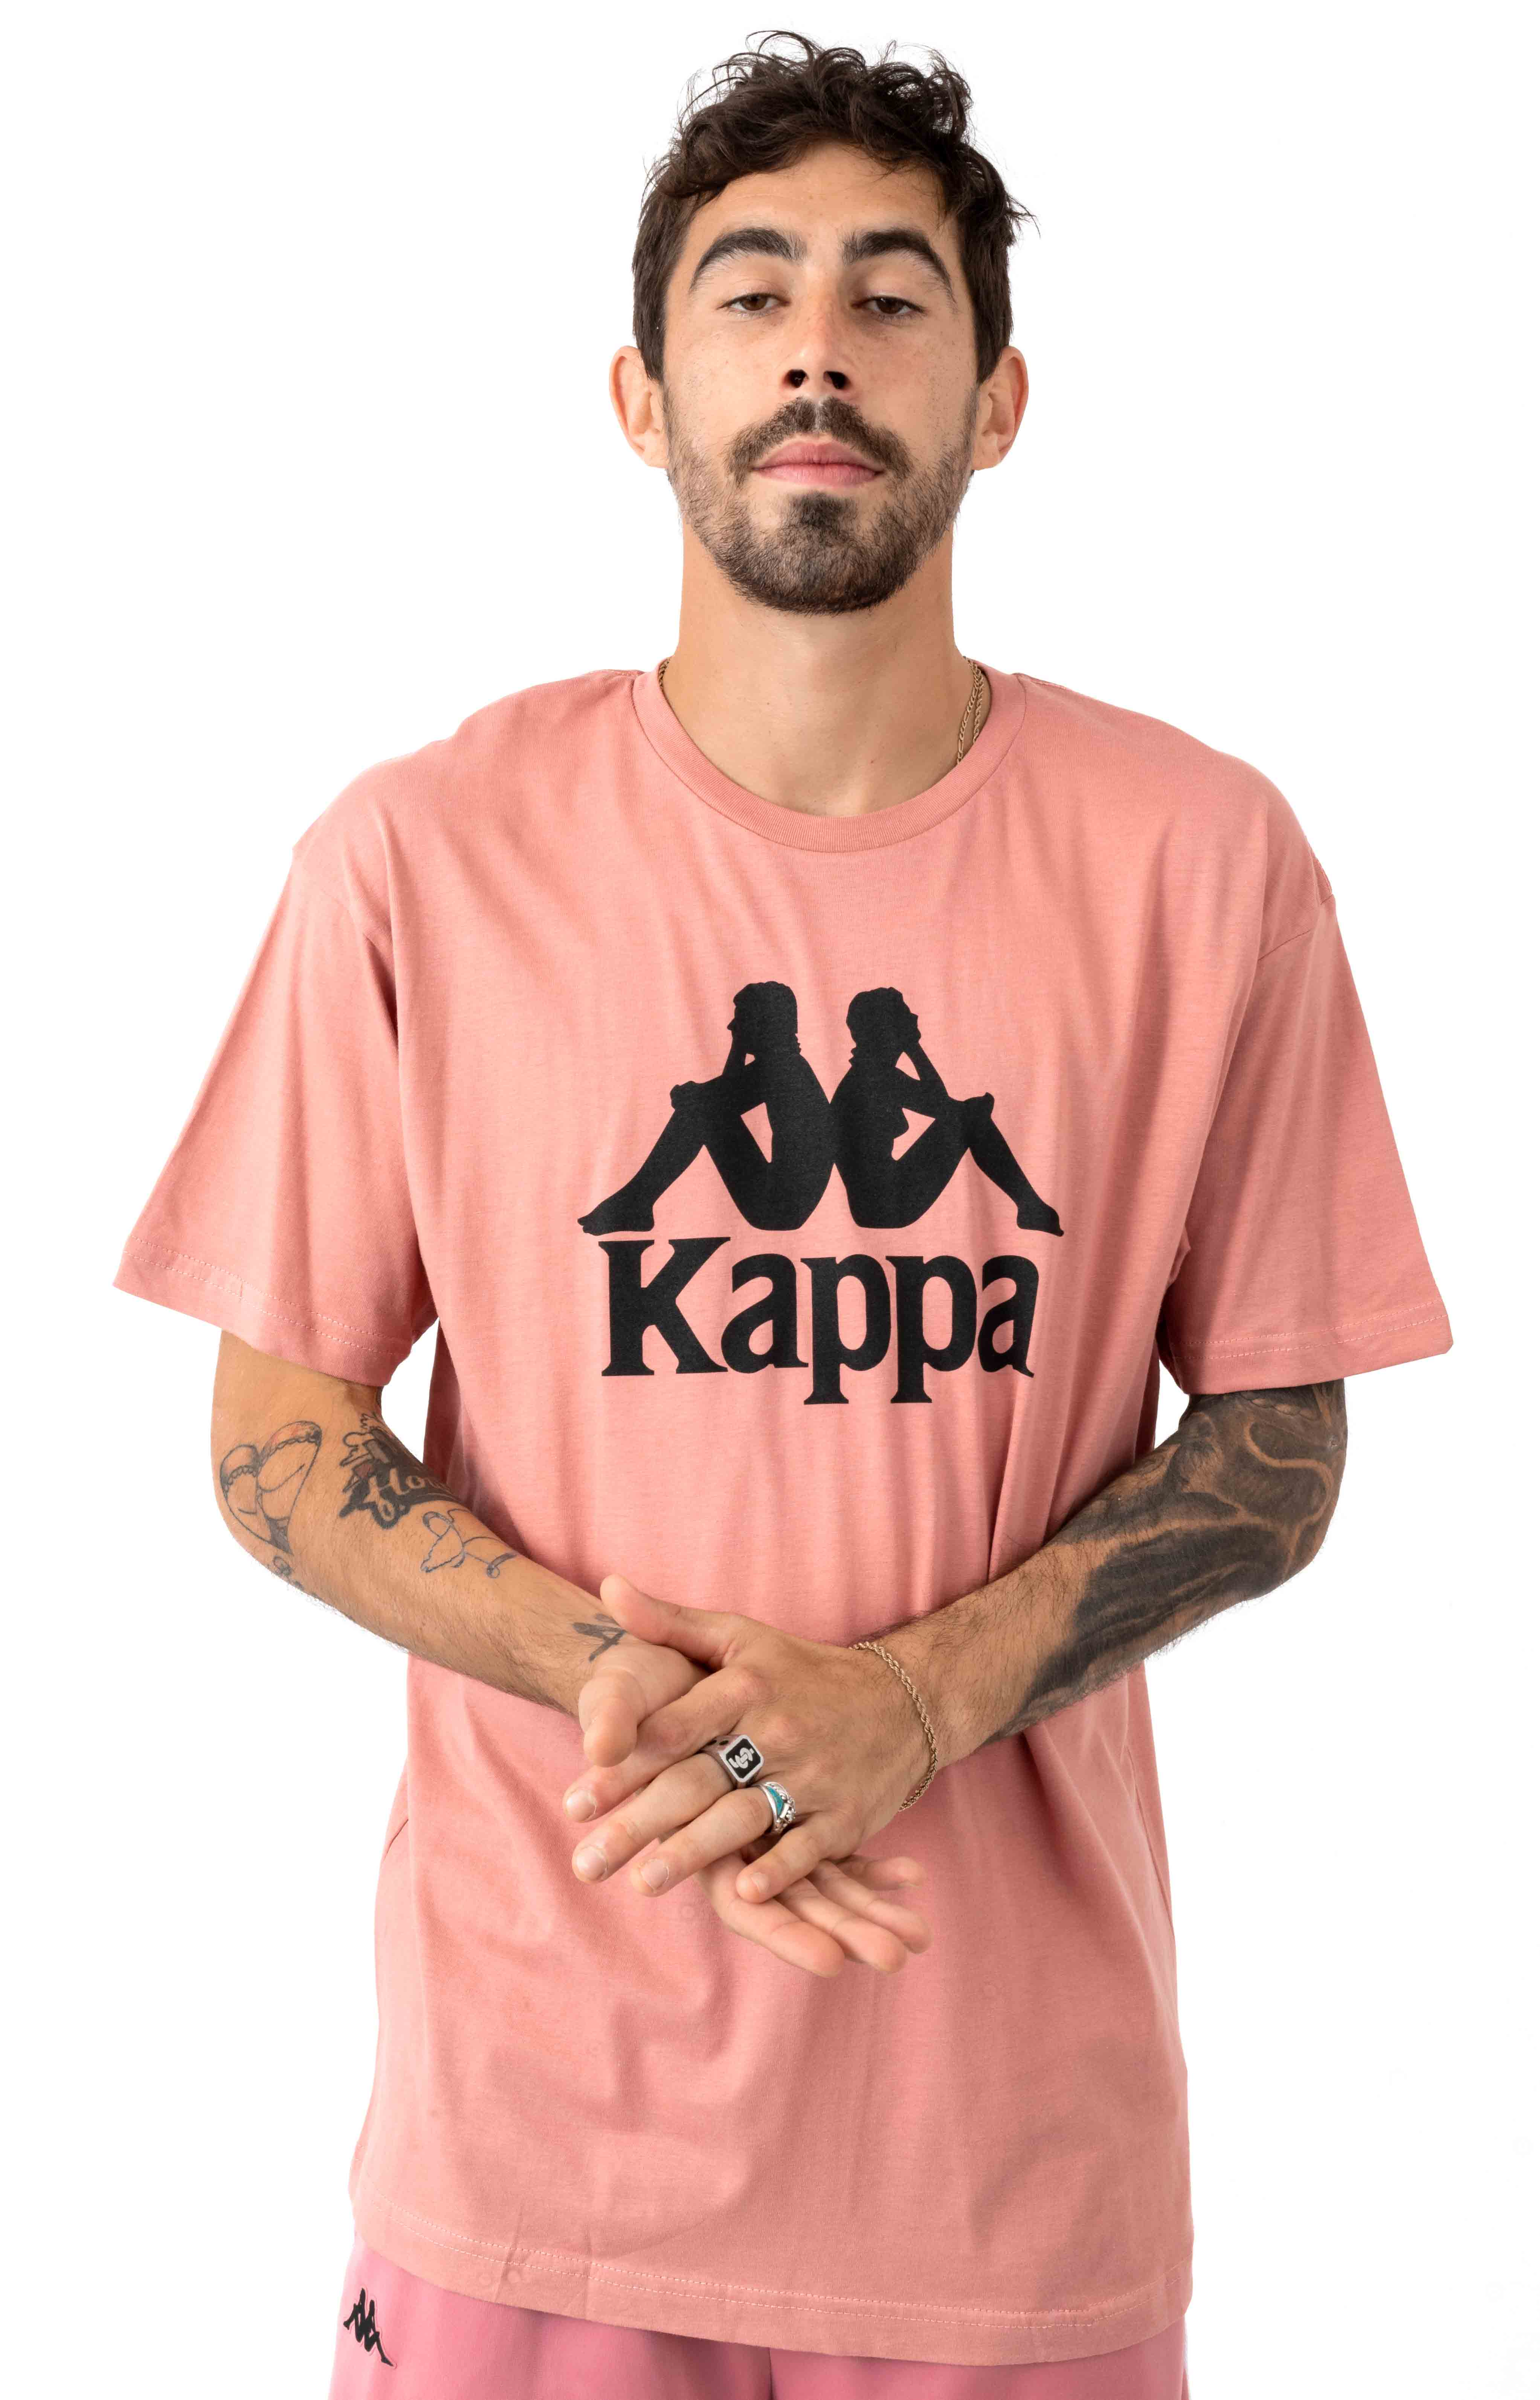 005b33c8 Kappa, Authentic Estessi T-Shirt - Pink | MLTD